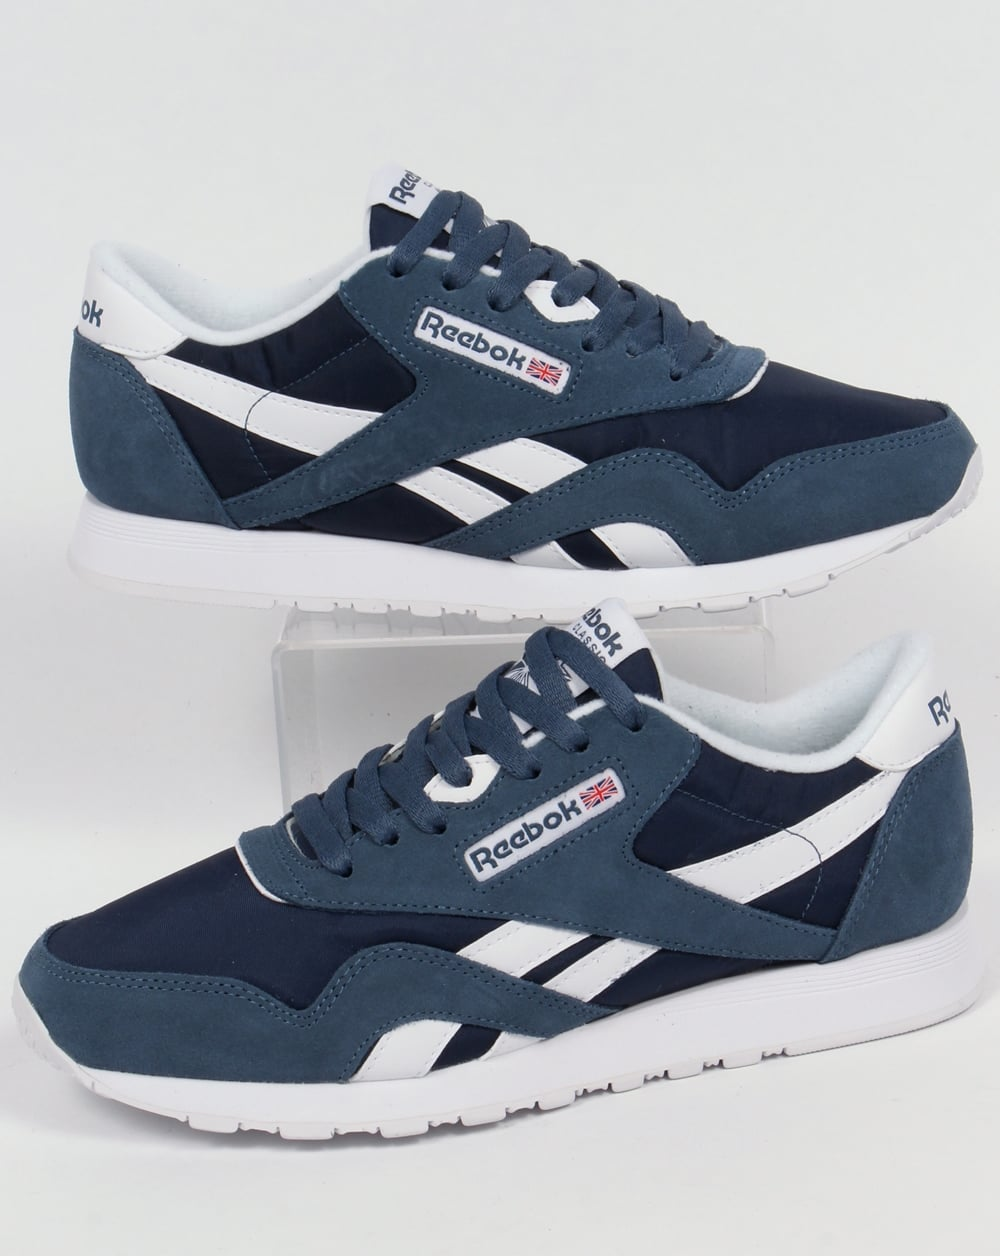 Adidas Shoes Blue And Gray